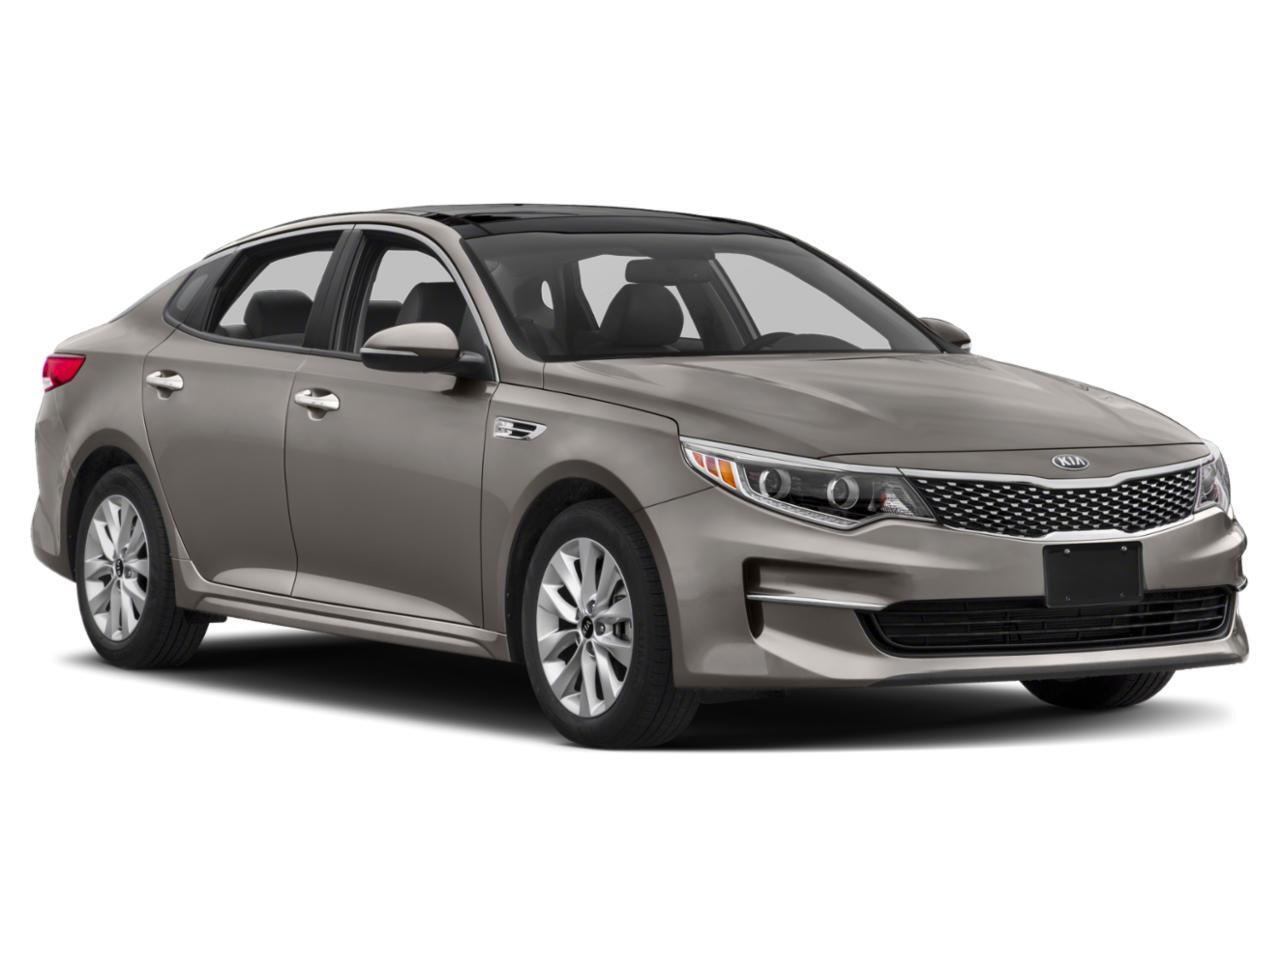 2018 Kia Optima LX South Attleboro MA